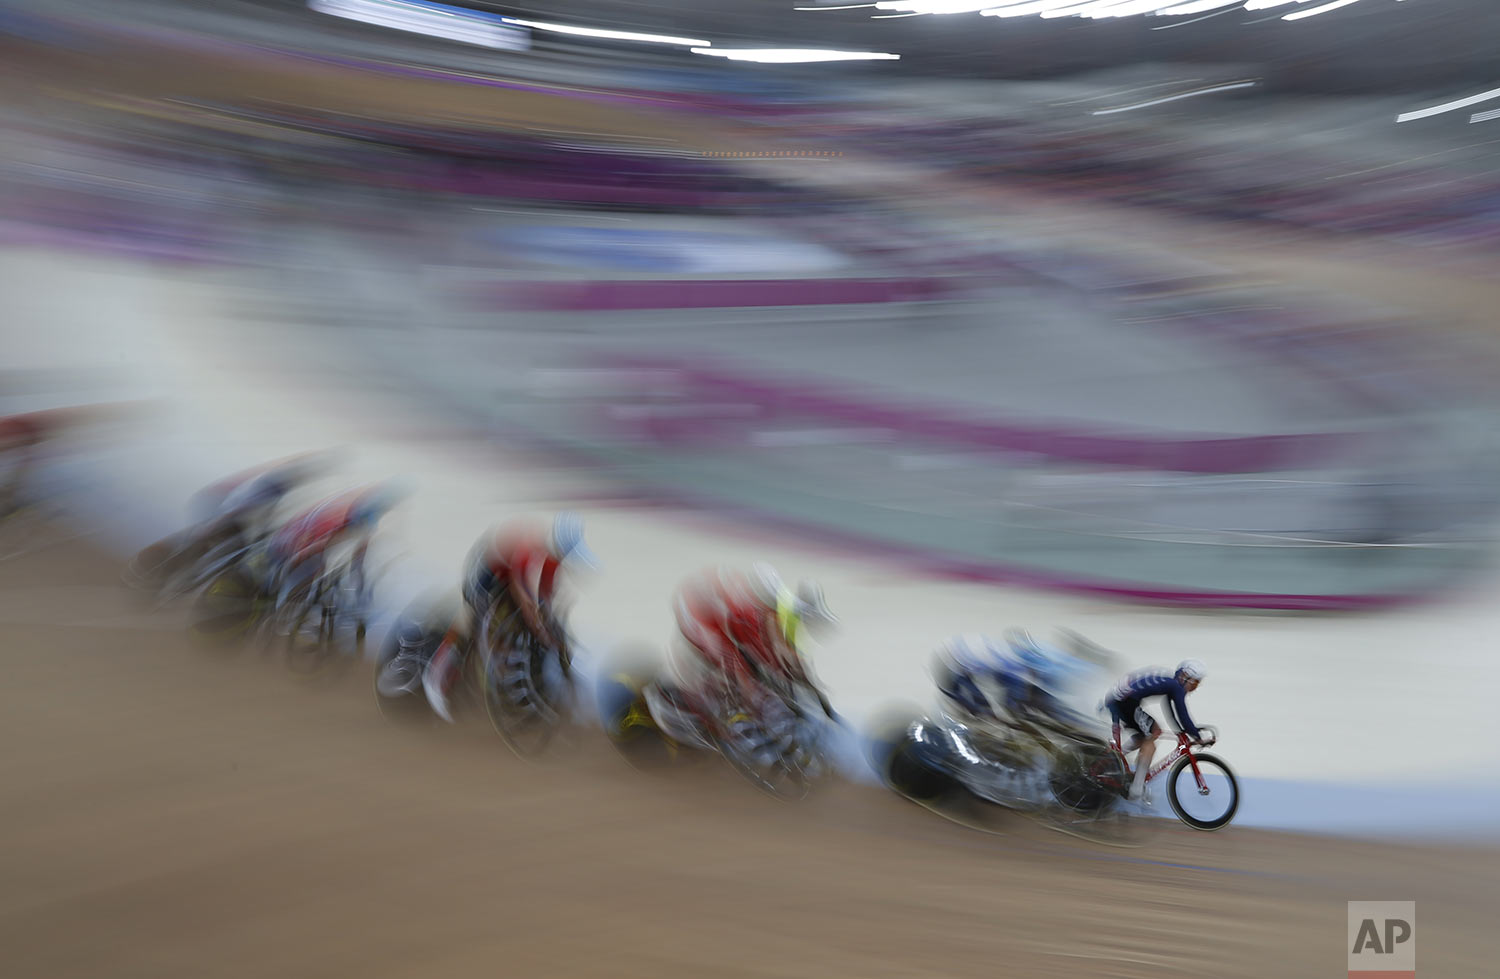 Daniel Holloway of the United States, right, competes in the cycling track men's omnium final at the Pan American Games in Lima, Peru, Thursday, Aug. 1, 2019. Holloway won the gold medal and Prado the silver medal. (AP Photo/Juan Karita)